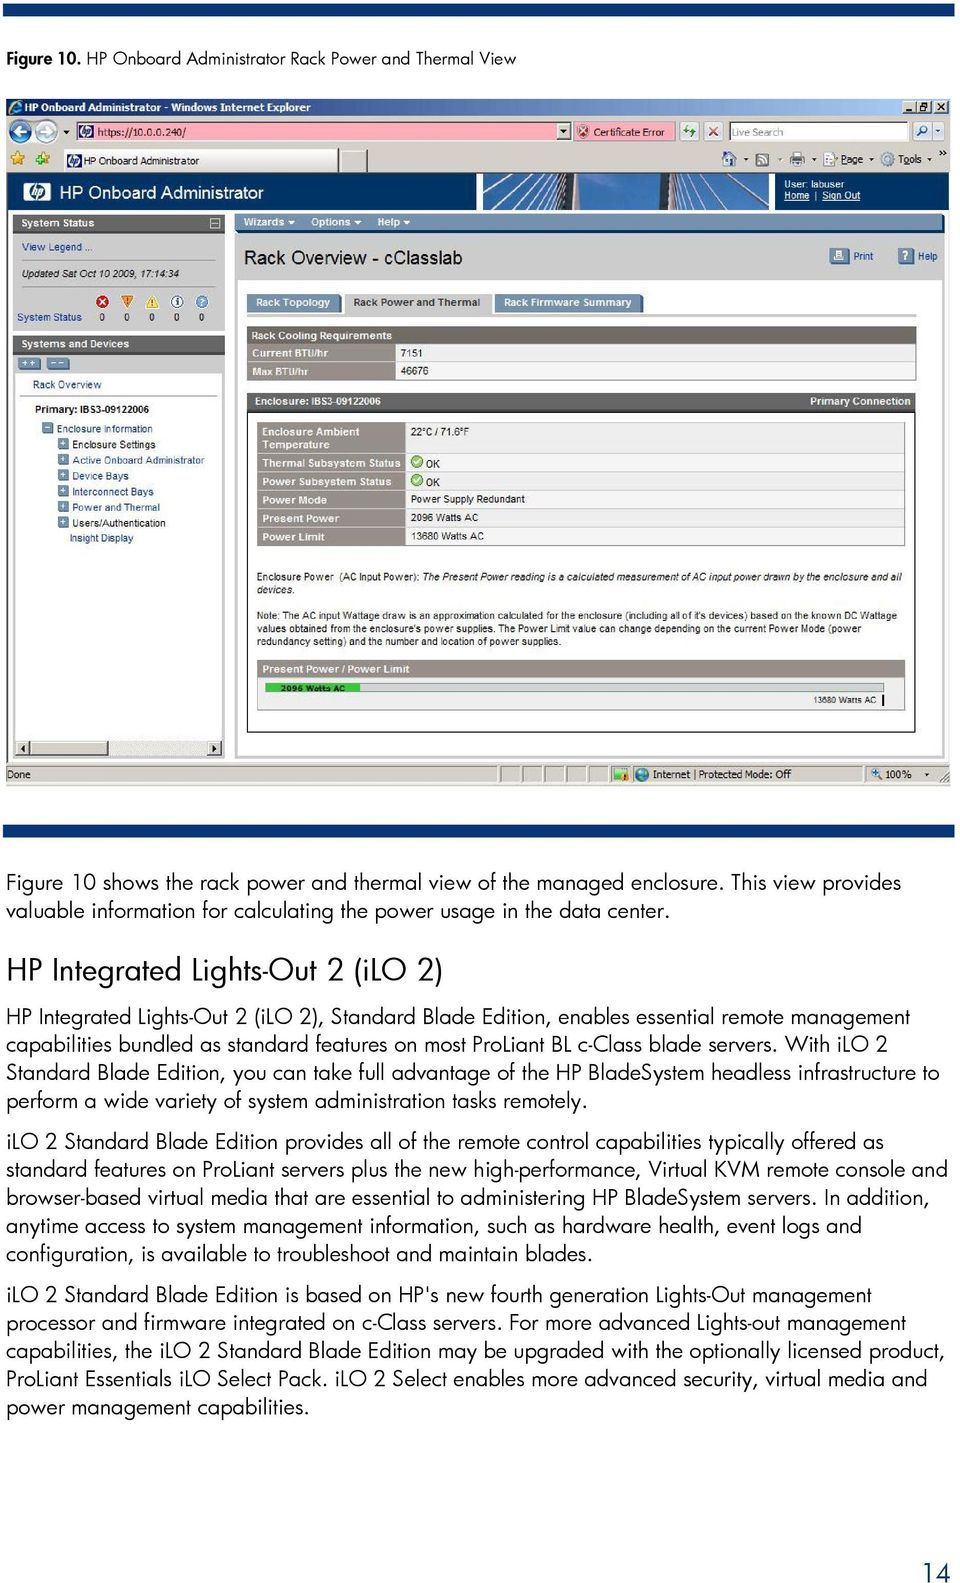 HP Integrated Lights-Out 2 (ilo 2) HP Integrated Lights-Out 2 (ilo 2), Standard Blade Edition, enables essential remote management capabilities bundled as standard features on most ProLiant BL